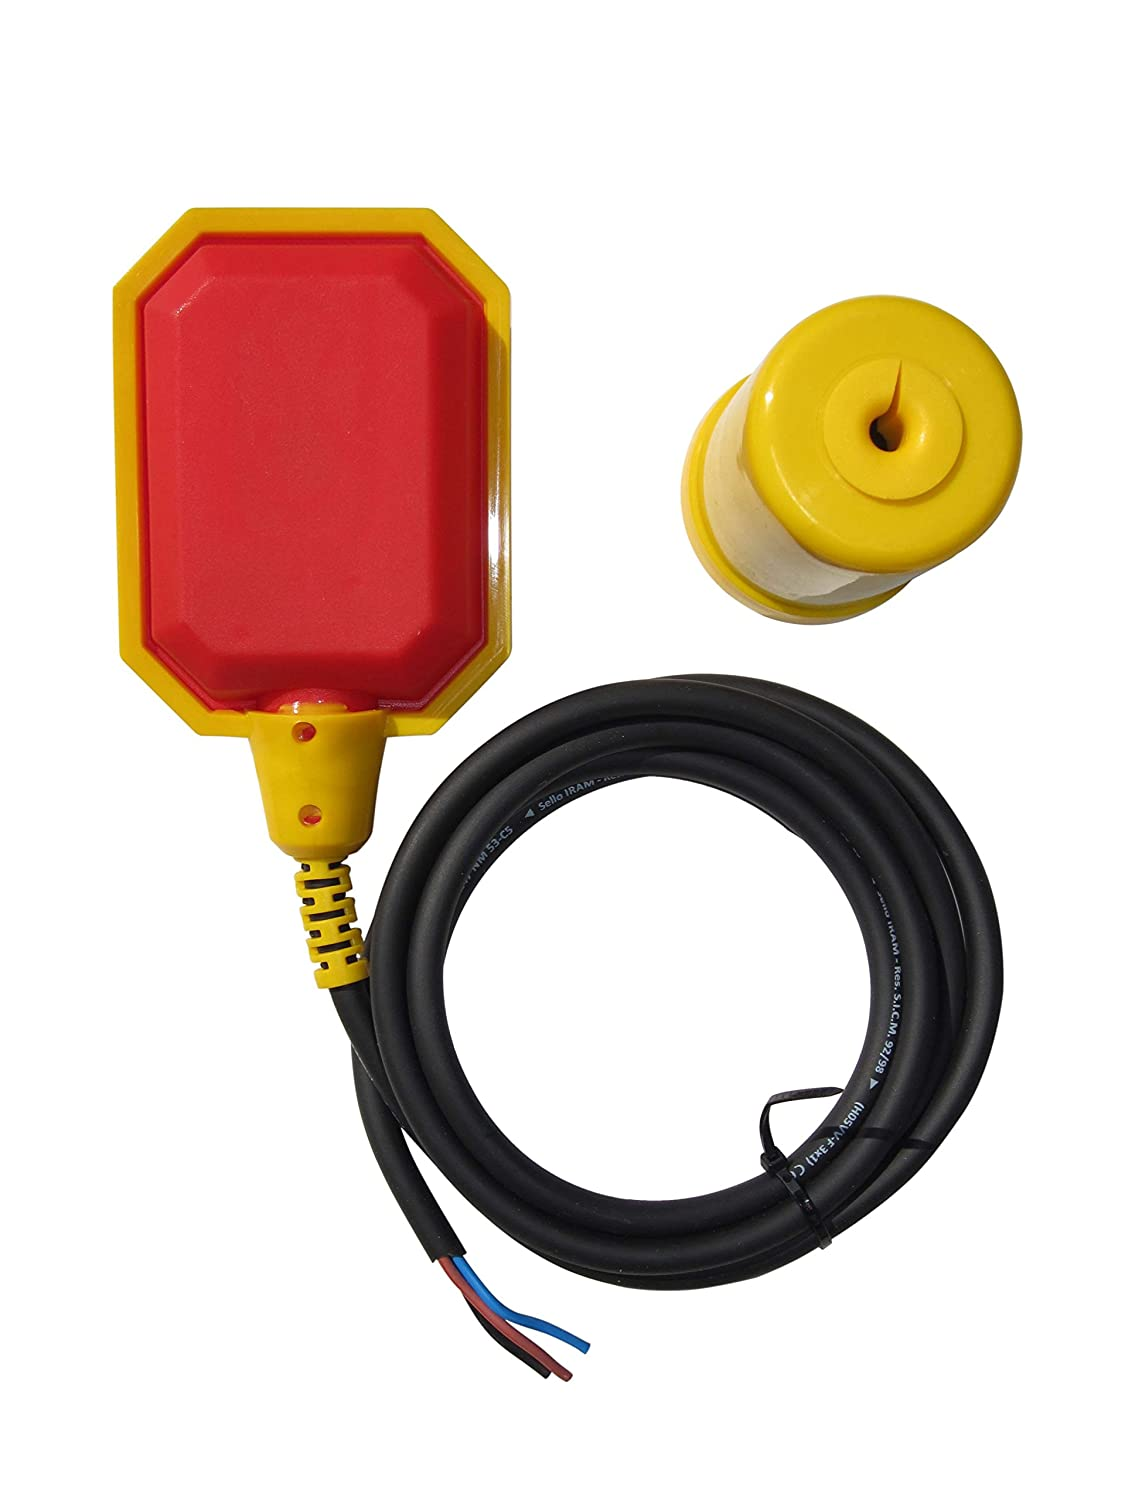 71JUTjNPPYL._SL1500_ float switch w 6 ft cable, water tank, sump pump amazon com  at fashall.co